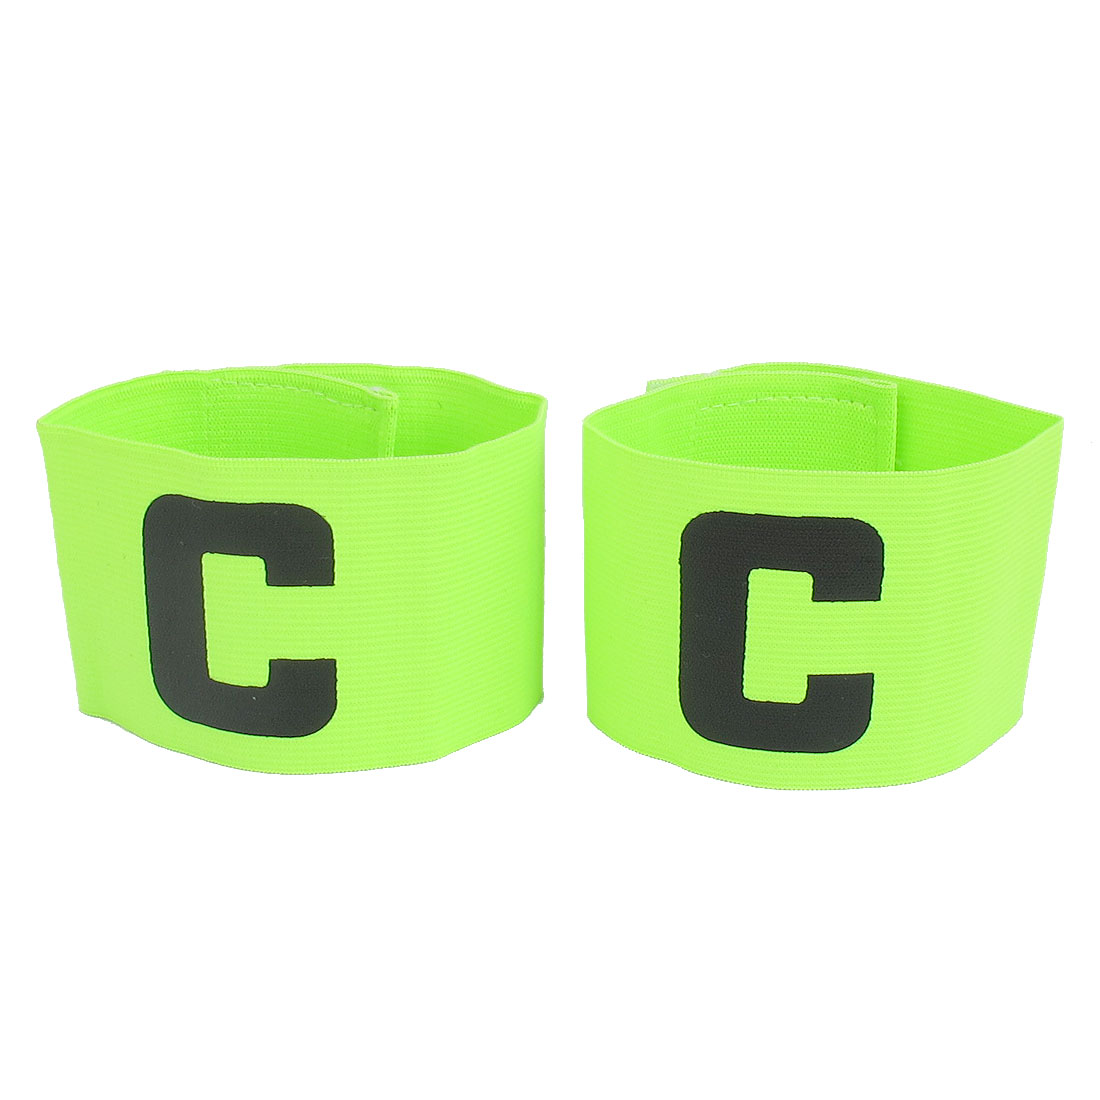 C Printed Elastic Football Tension Soccer Leader Player Captain Armband Yellow Green 2pcs